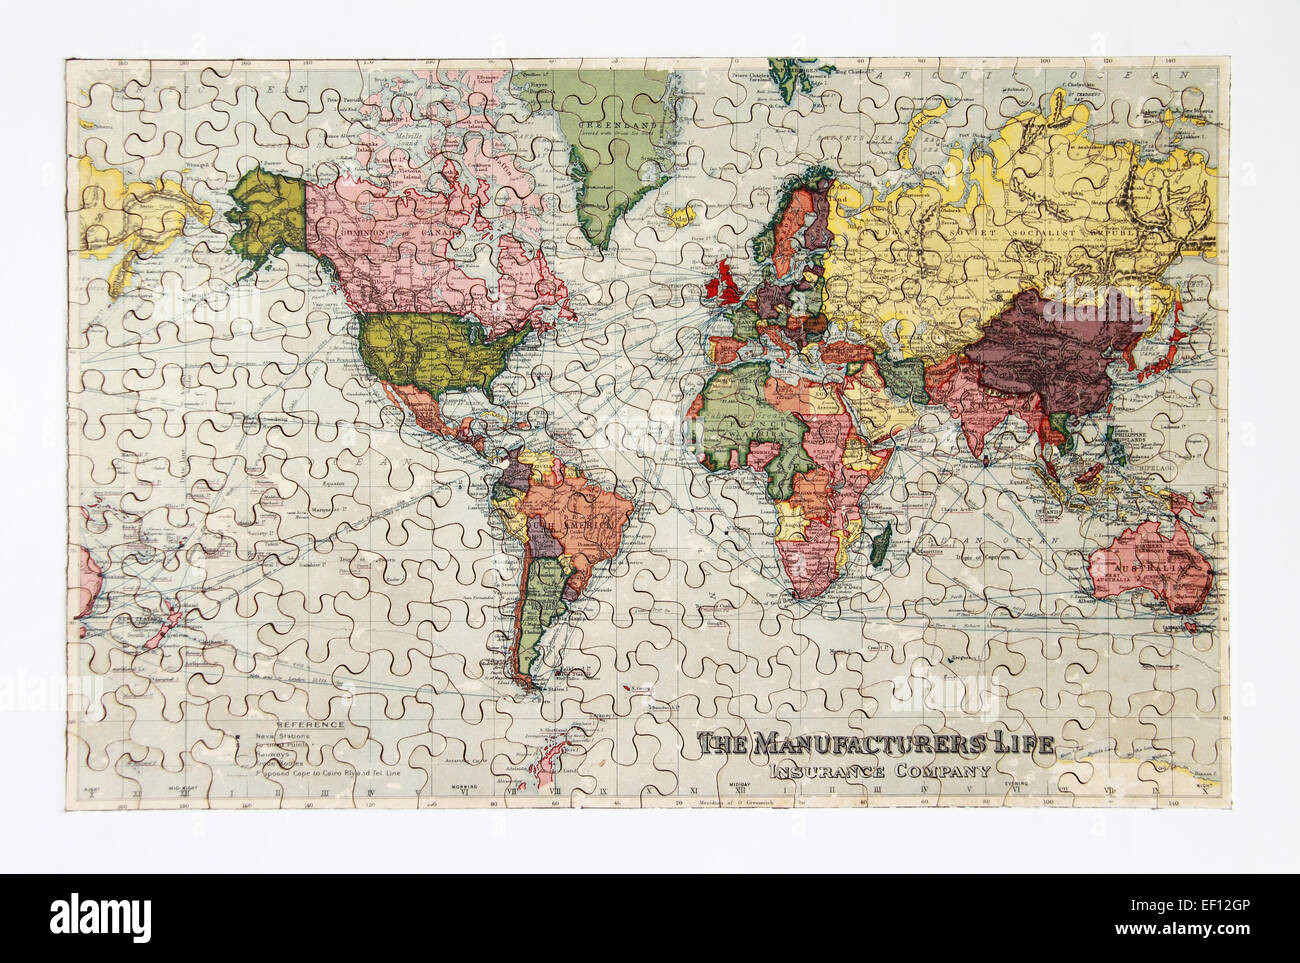 1930 39 s world map jigsaw produced on behalf of manufacturer 5 1930 39 s world map jigsaw produced on behalf of manufacturer gumiabroncs Gallery